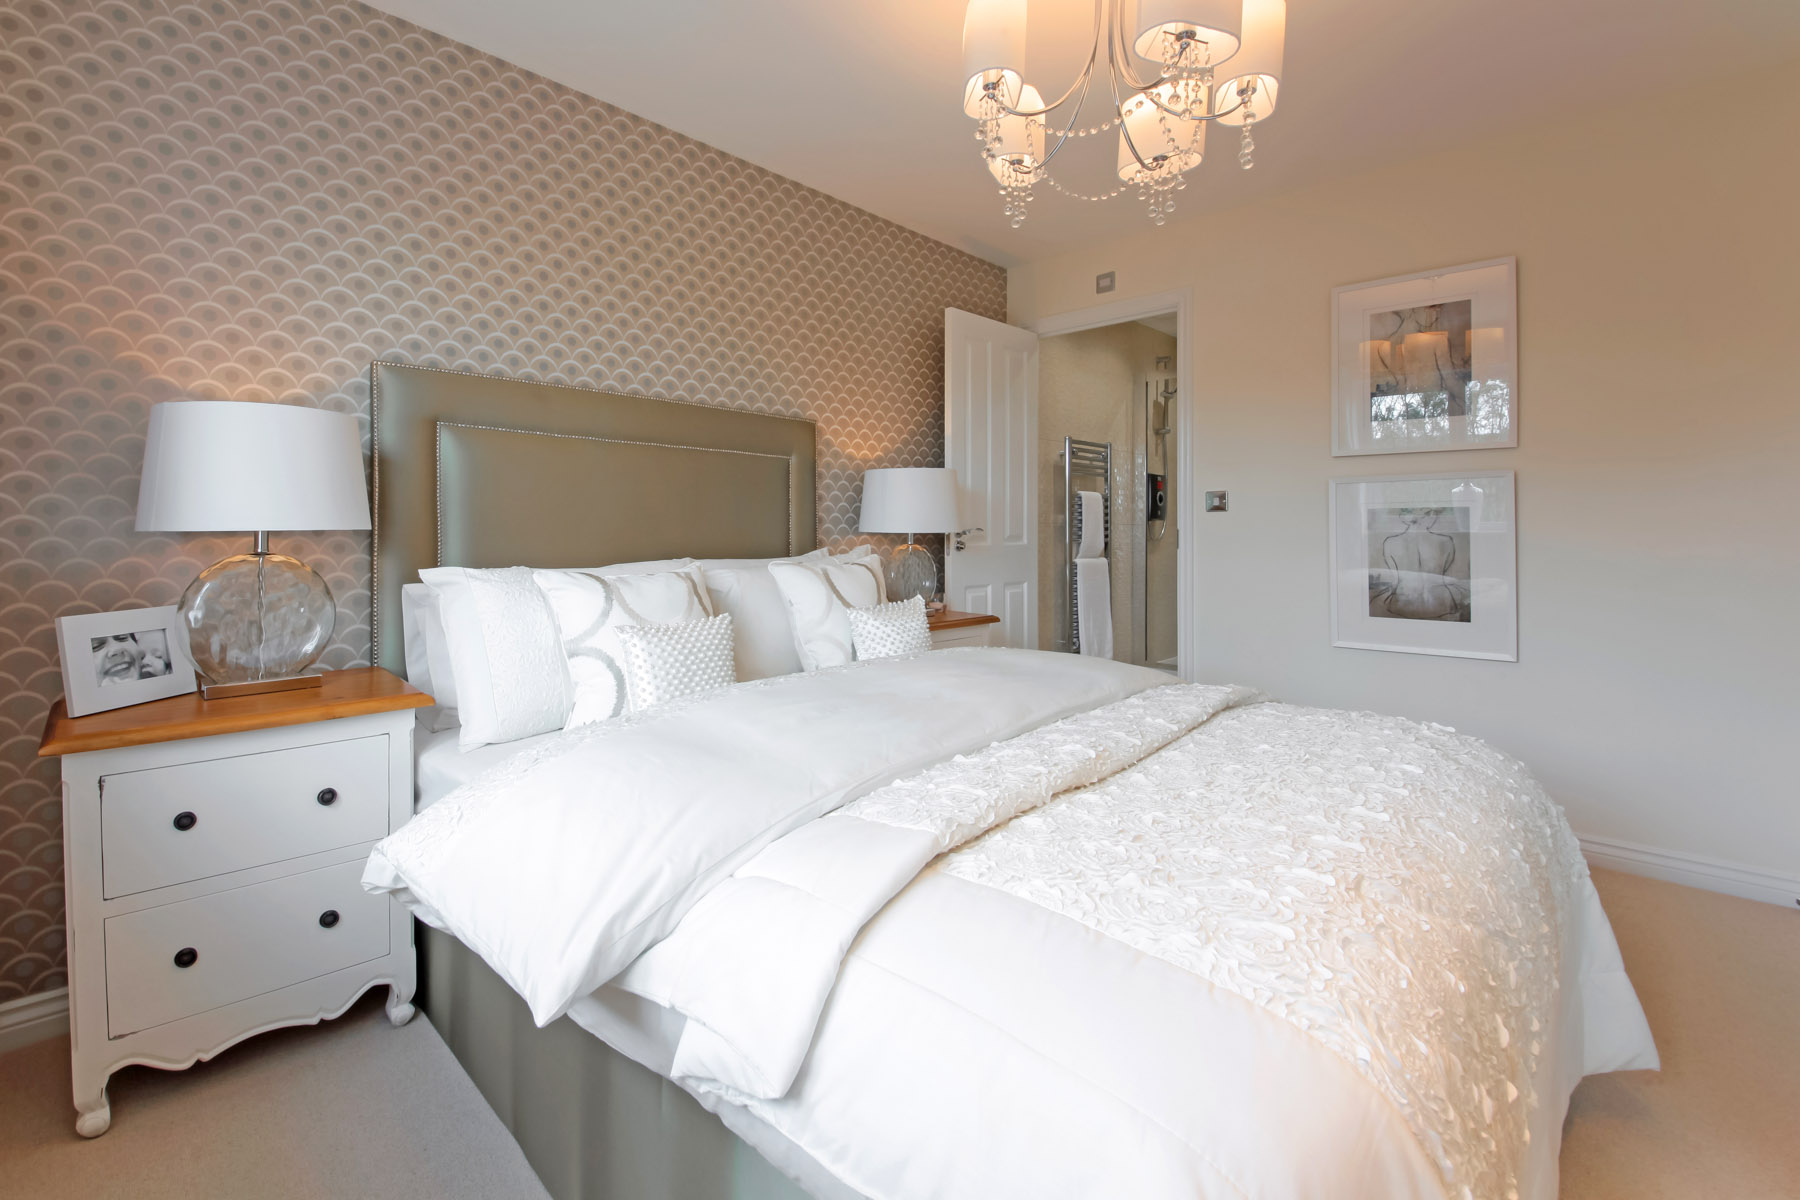 015_DMV_Lydford_Master_Bedroom